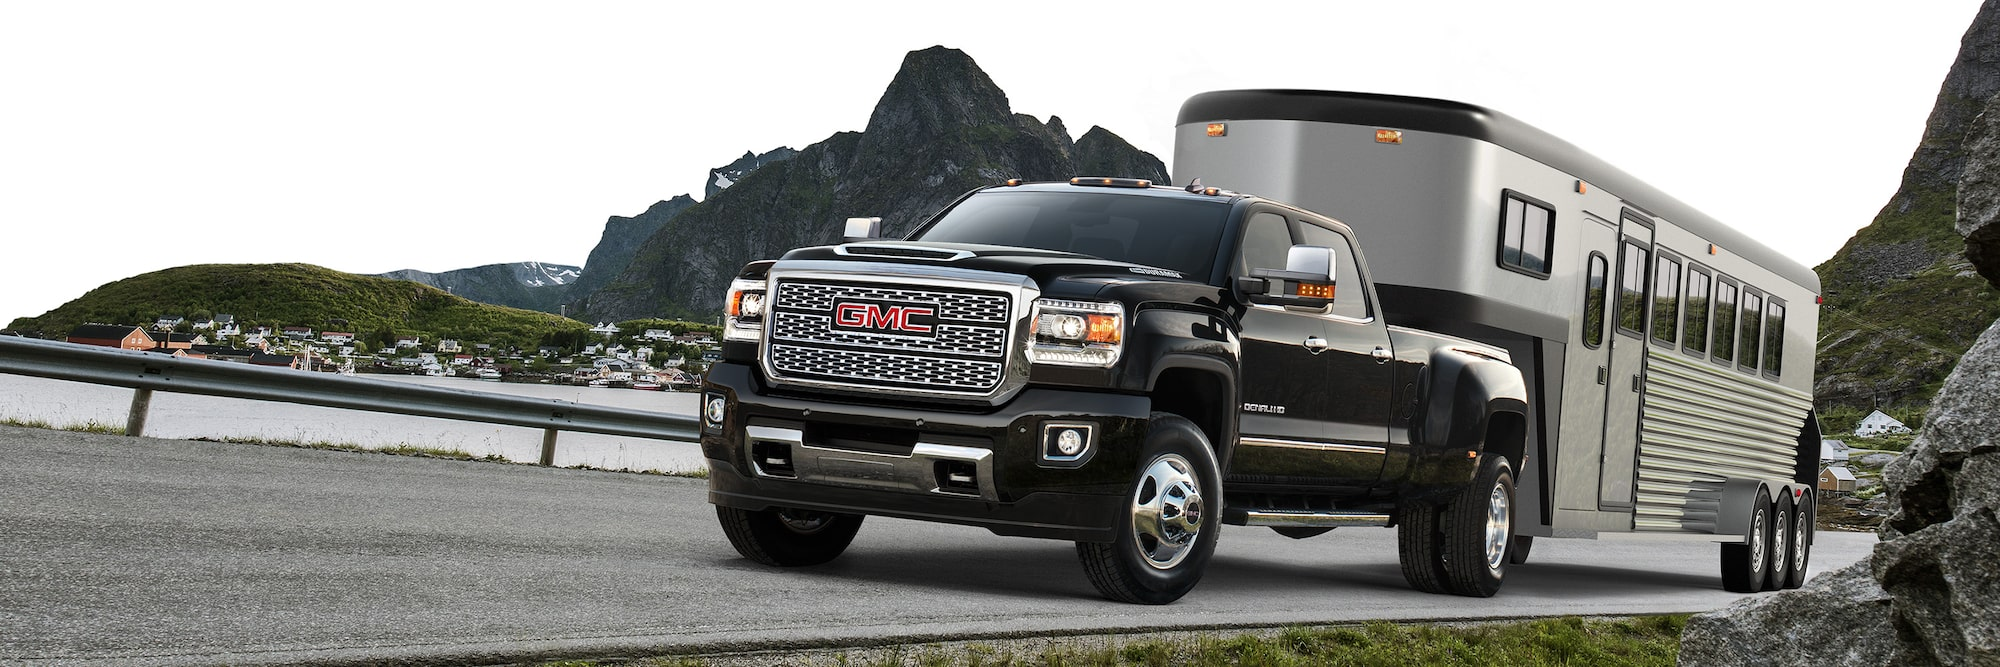 gmc life sierra hd 5th wheel package  [ 2048 x 683 Pixel ]